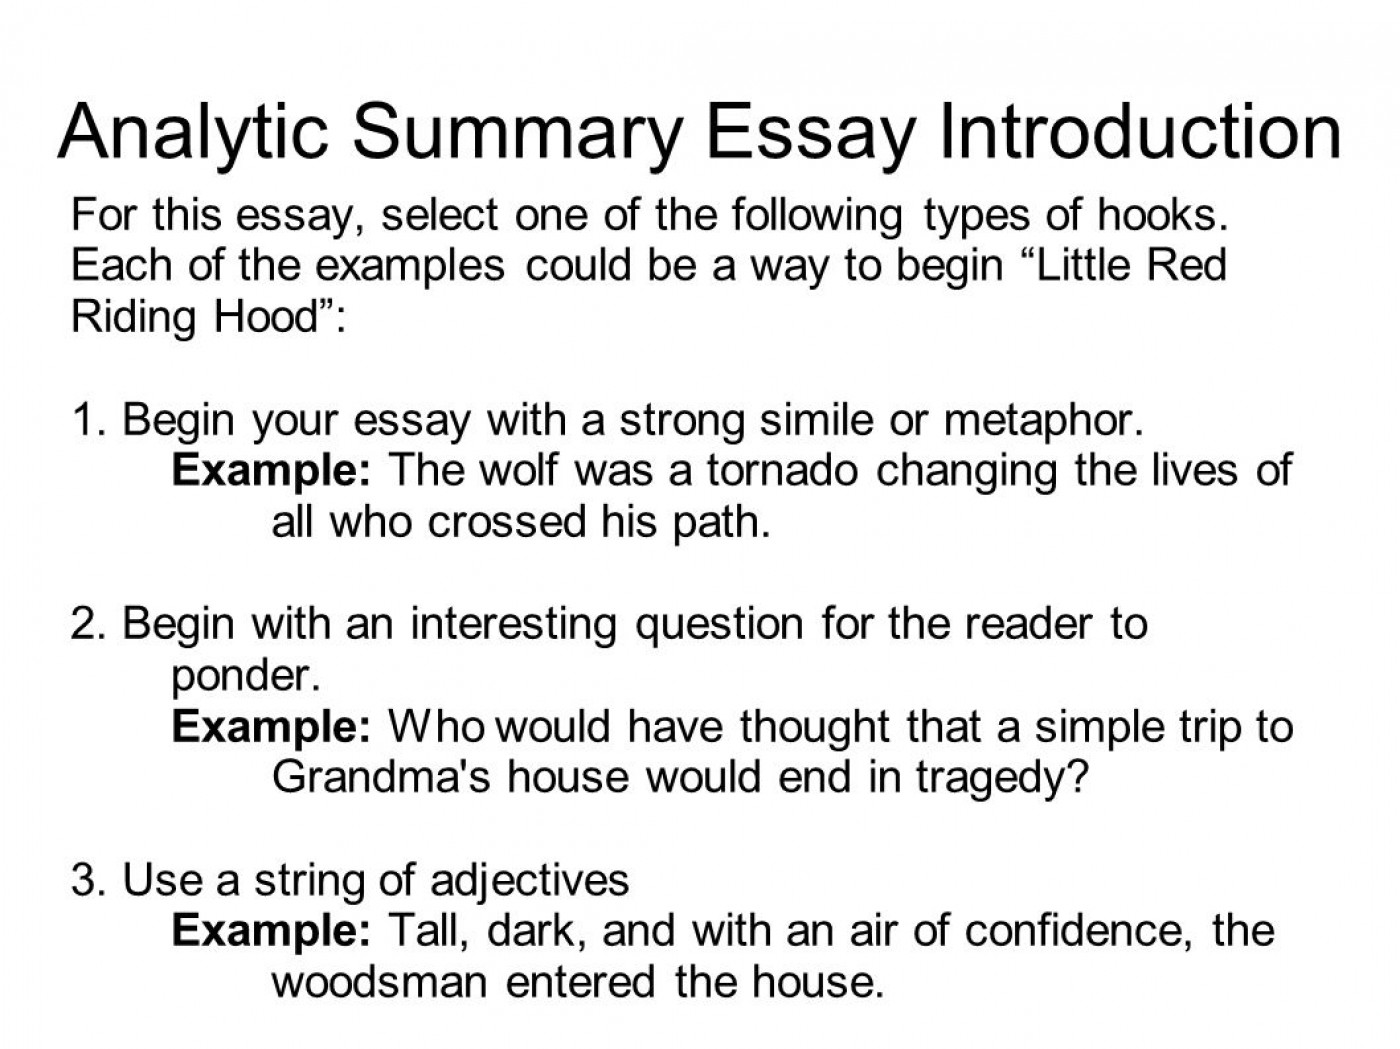 006 Essay Example Examples Of Hooks For Essays Co Sli Expository Comparison Writing Narrative Argumentative Types High Sensational Some Opinion 1400